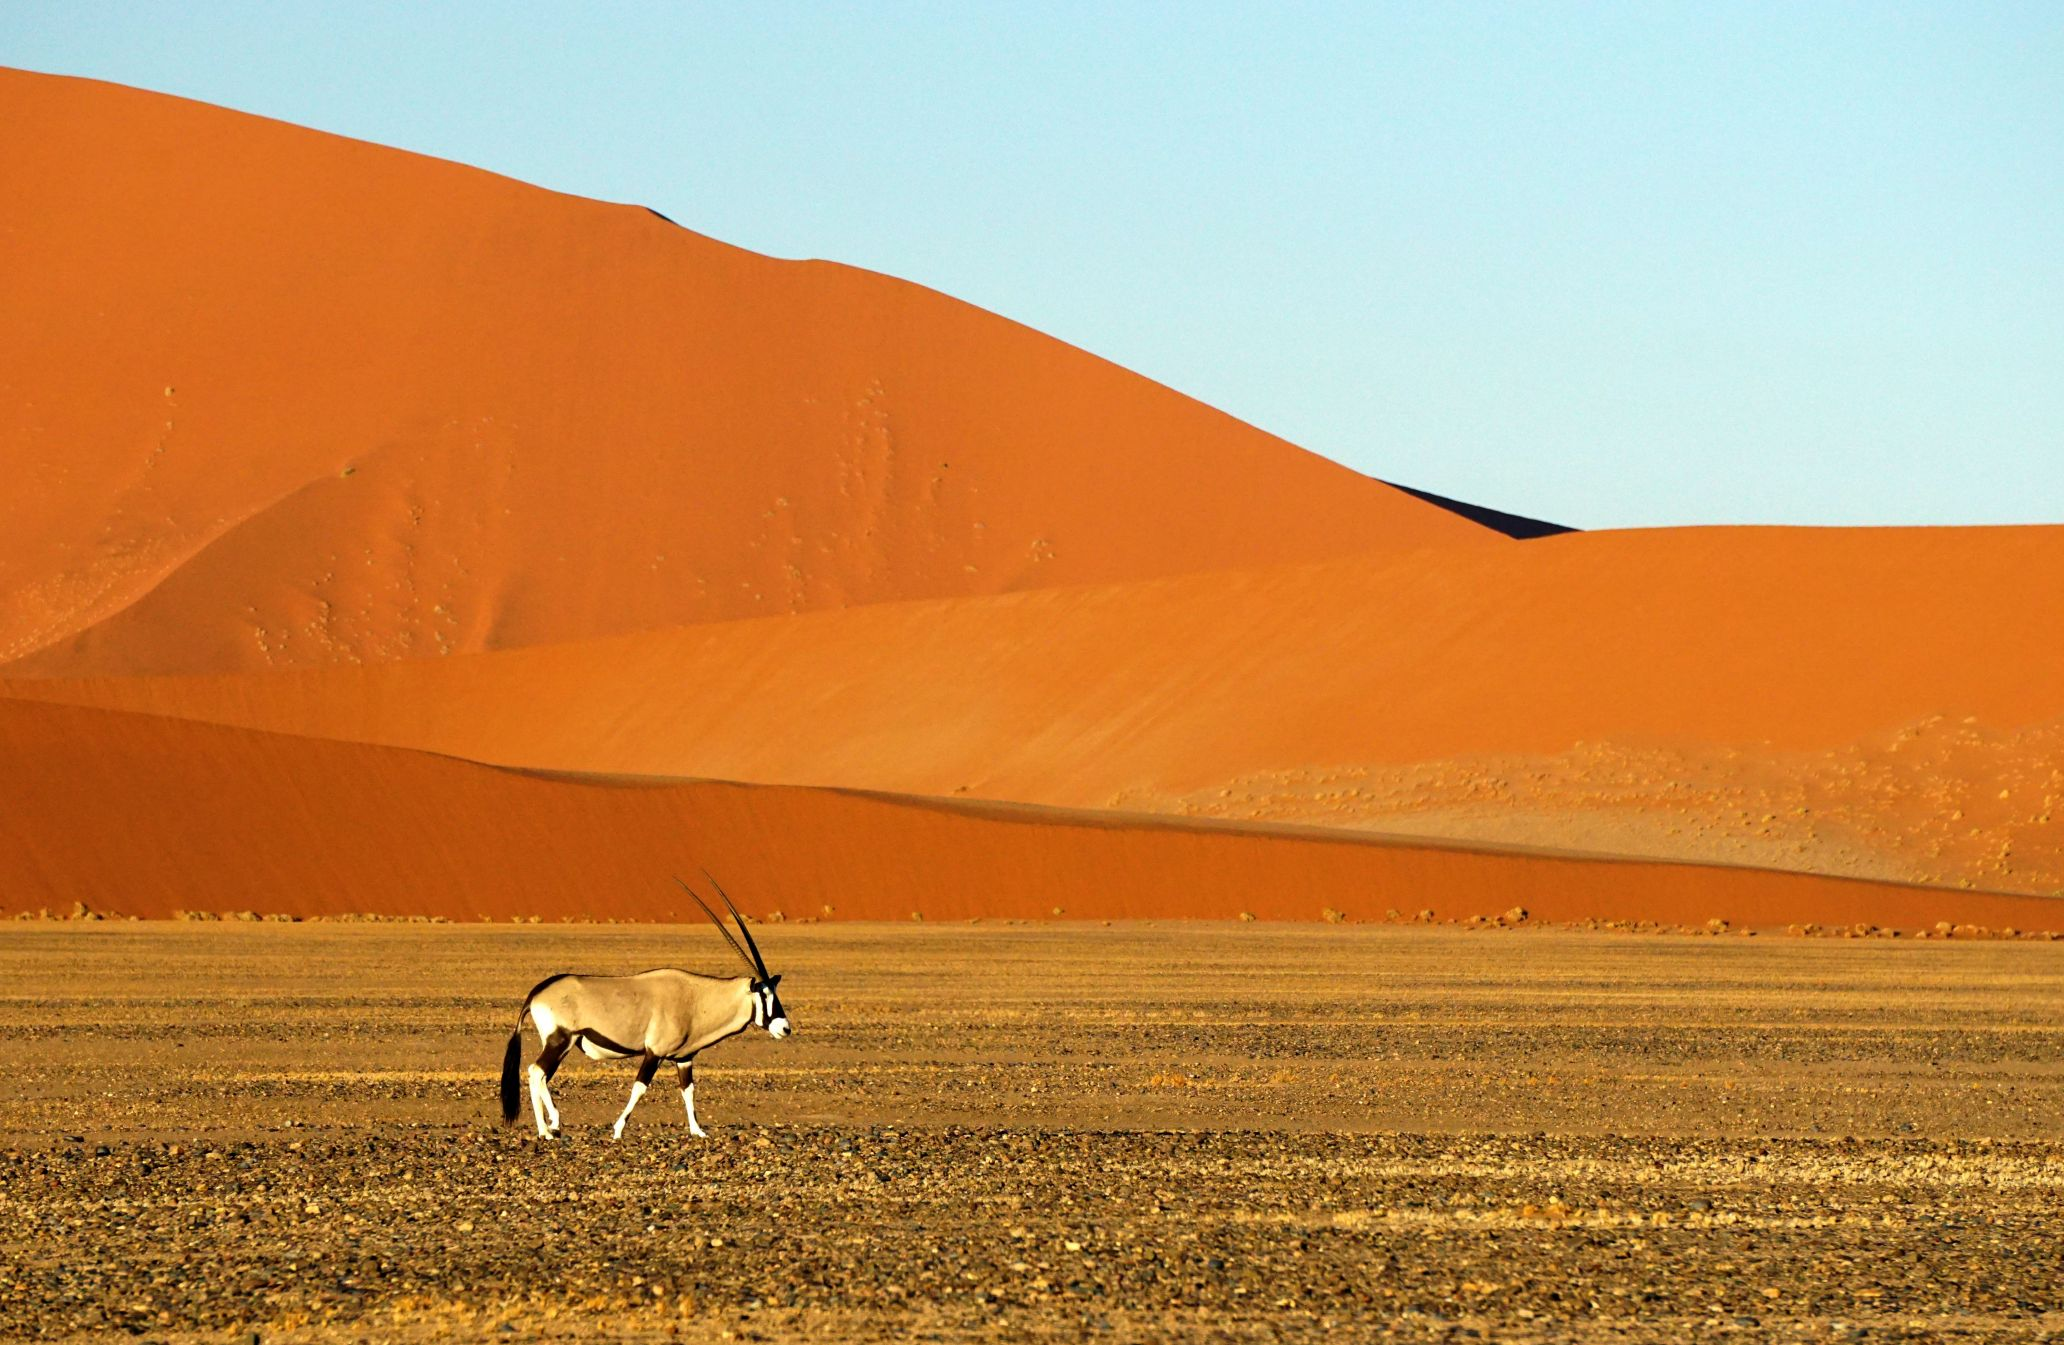 Oryx gazella in the Namib-Naukluft Reserve in Namibia.